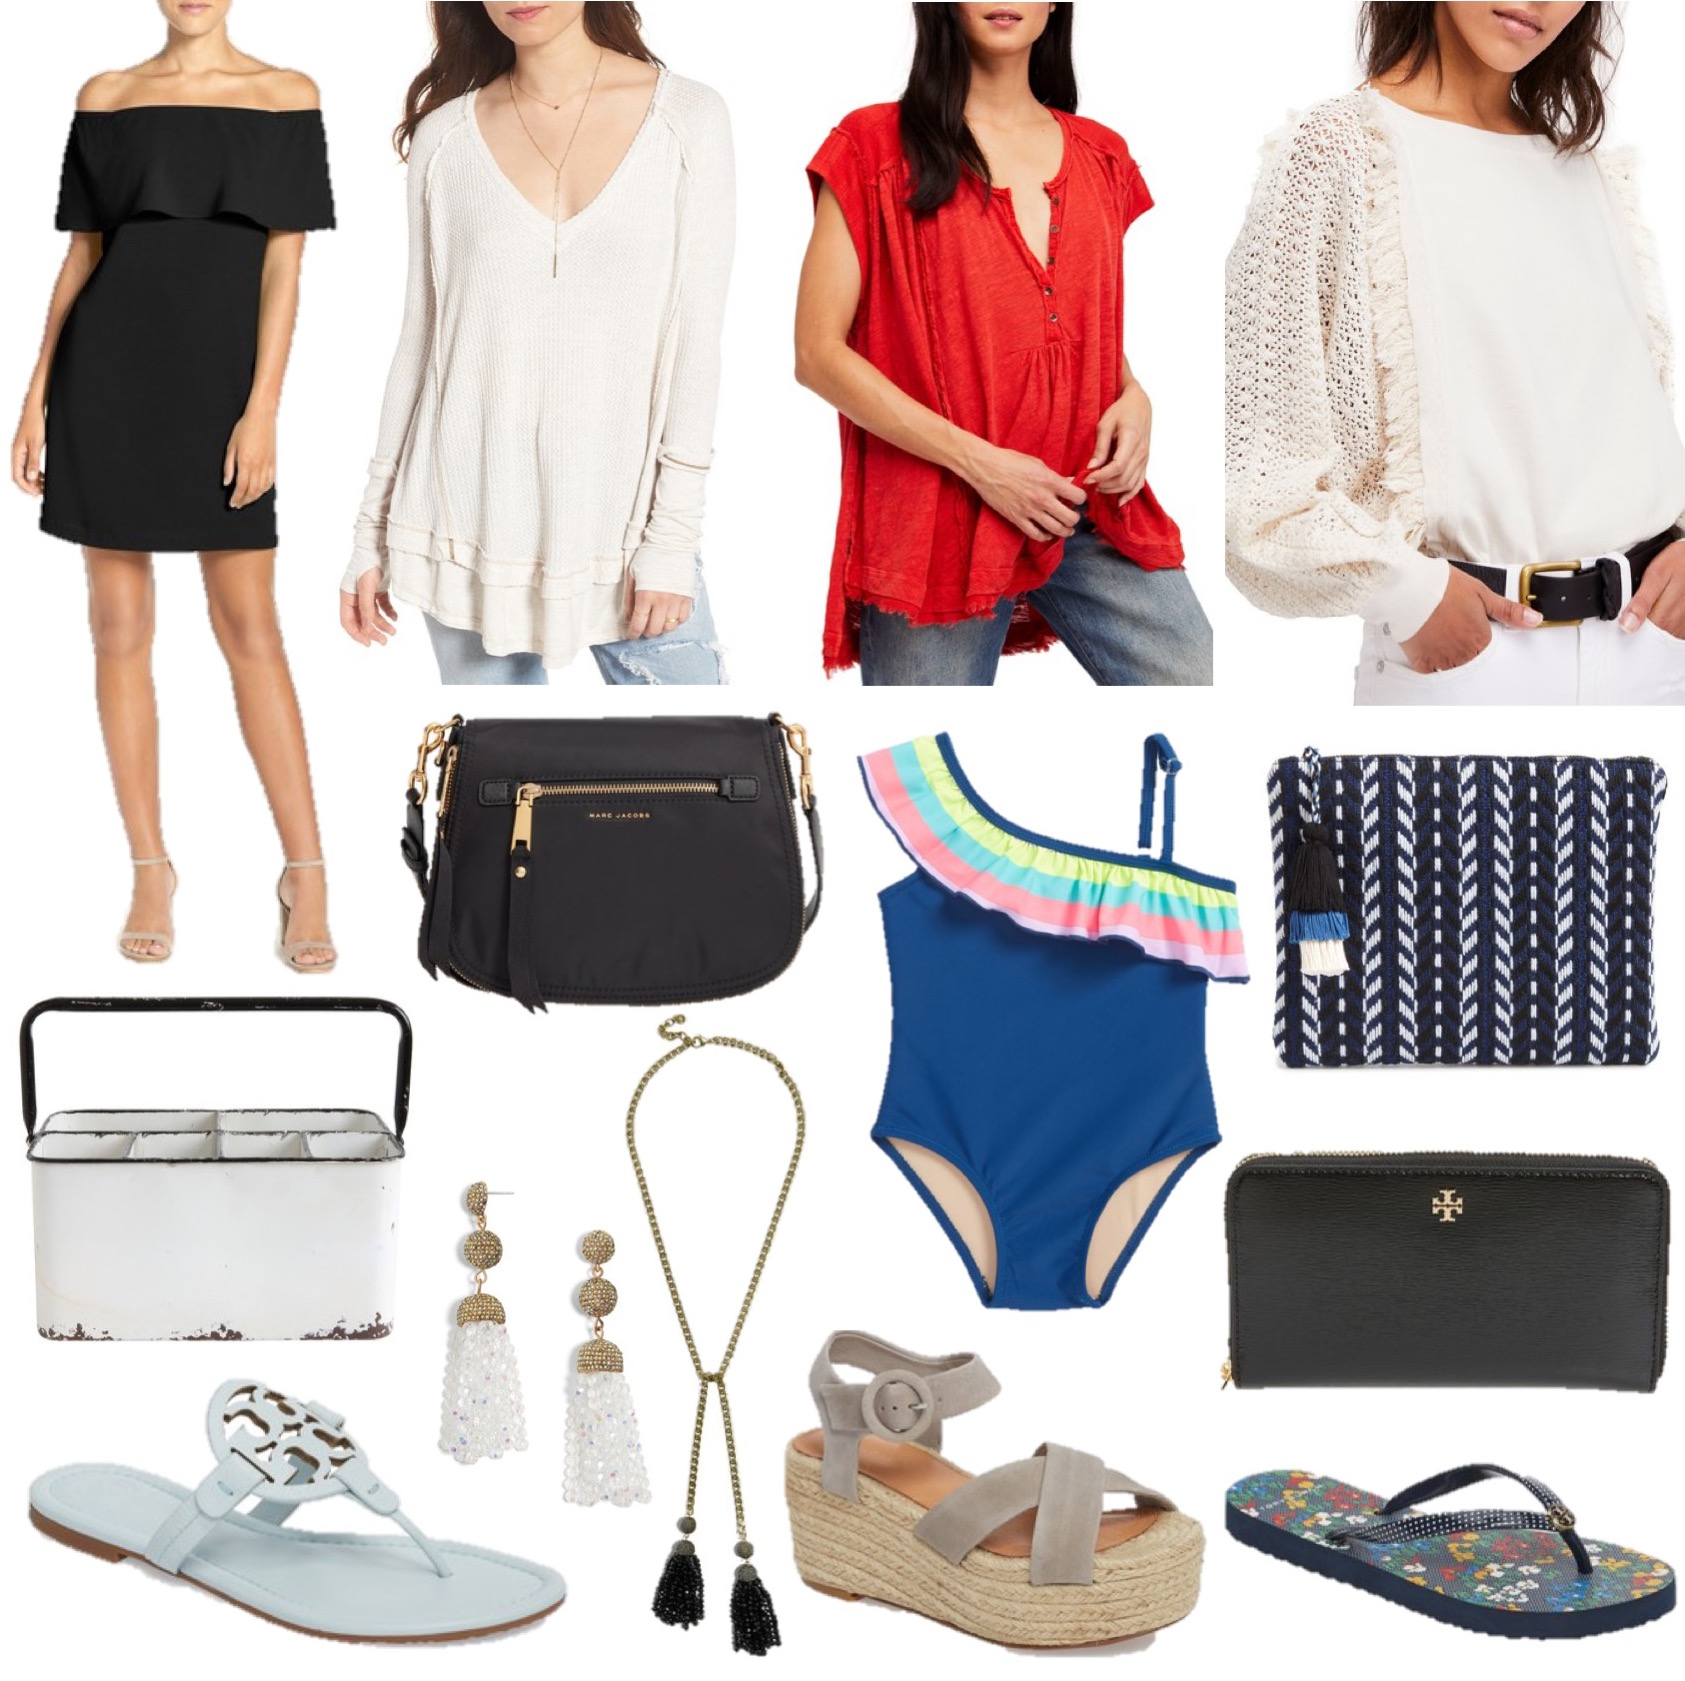 ddbd4abb57cb Nordstrom Half Yearly Sale-My Favorite Picks! - House of Hargrove